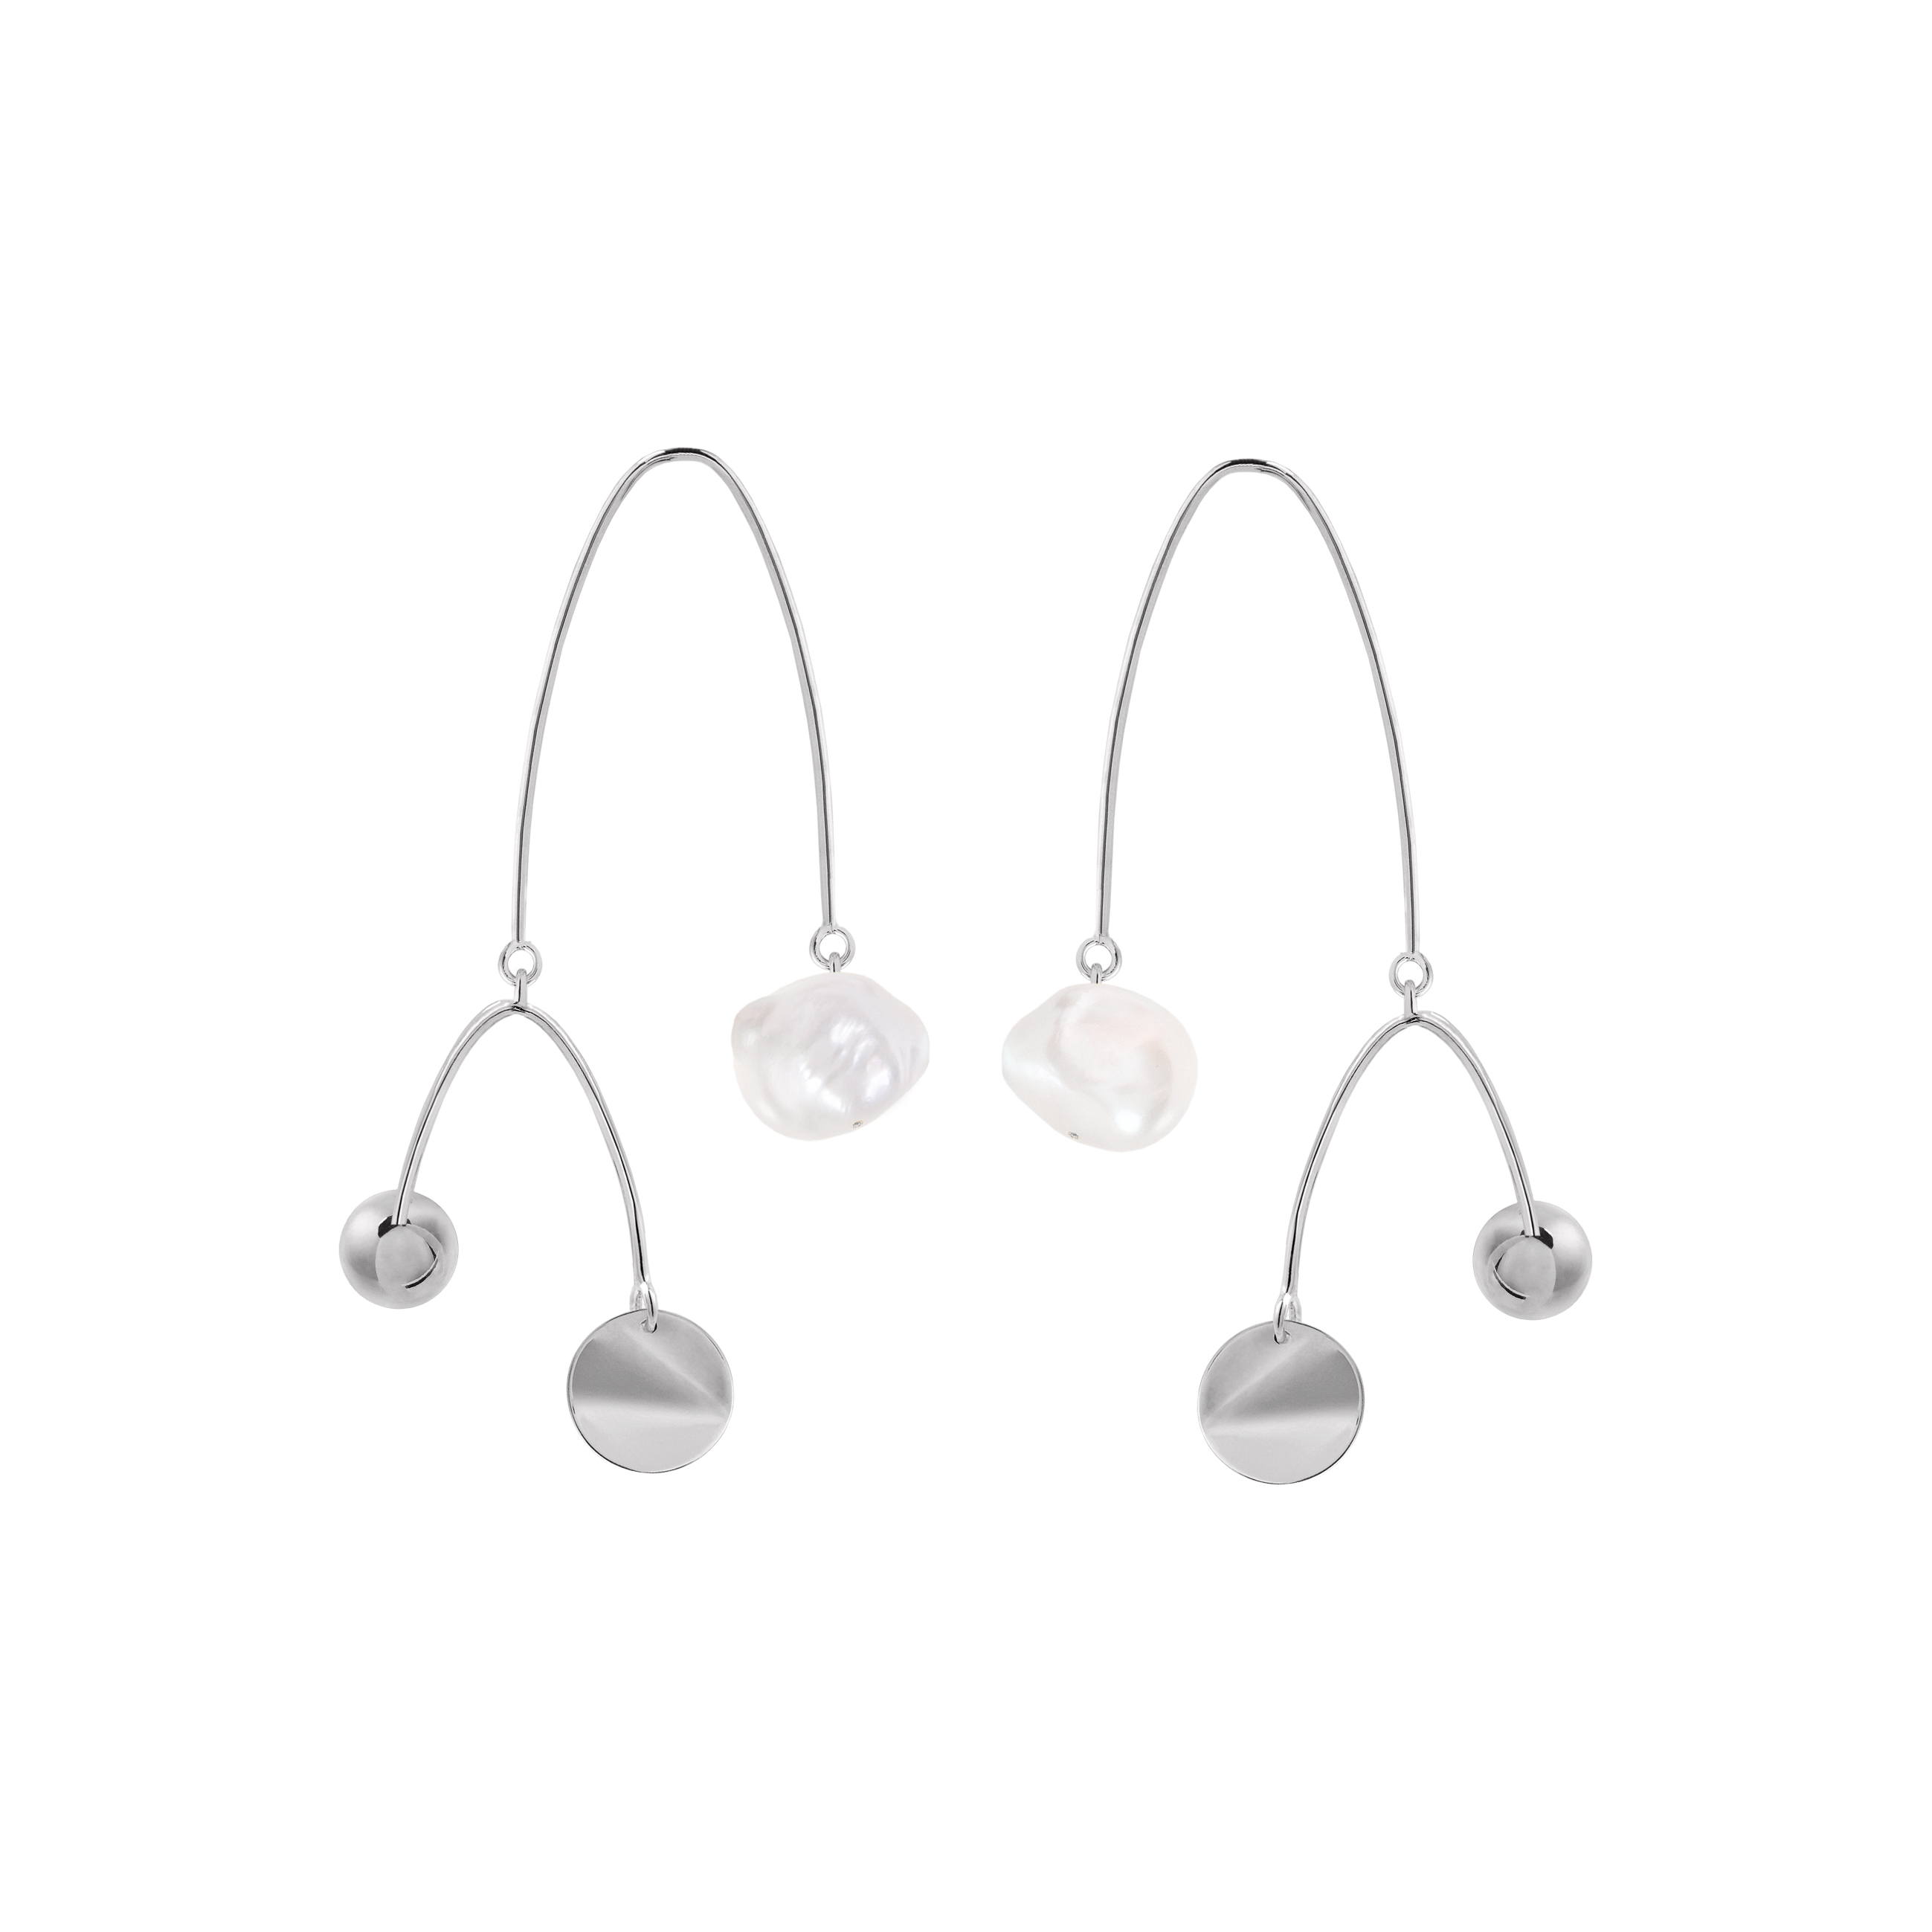 Mobile Earrings 1 Silver